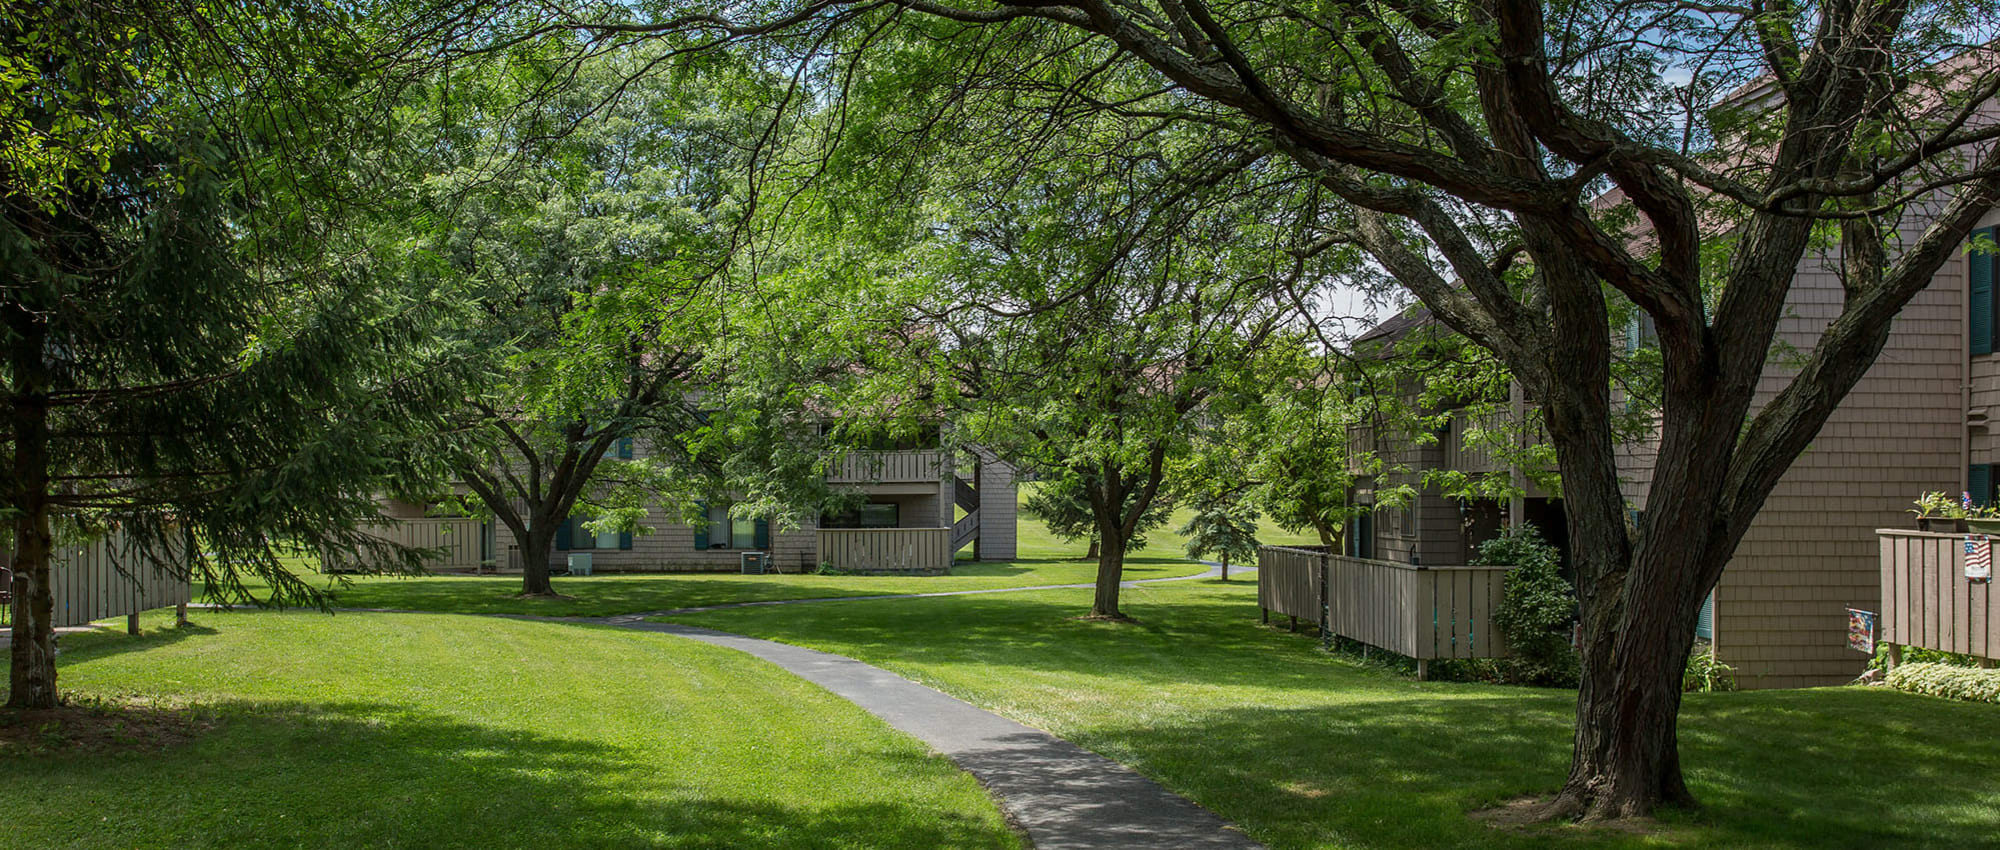 Apartments at Steeplechase Apartments in Camillus, New York